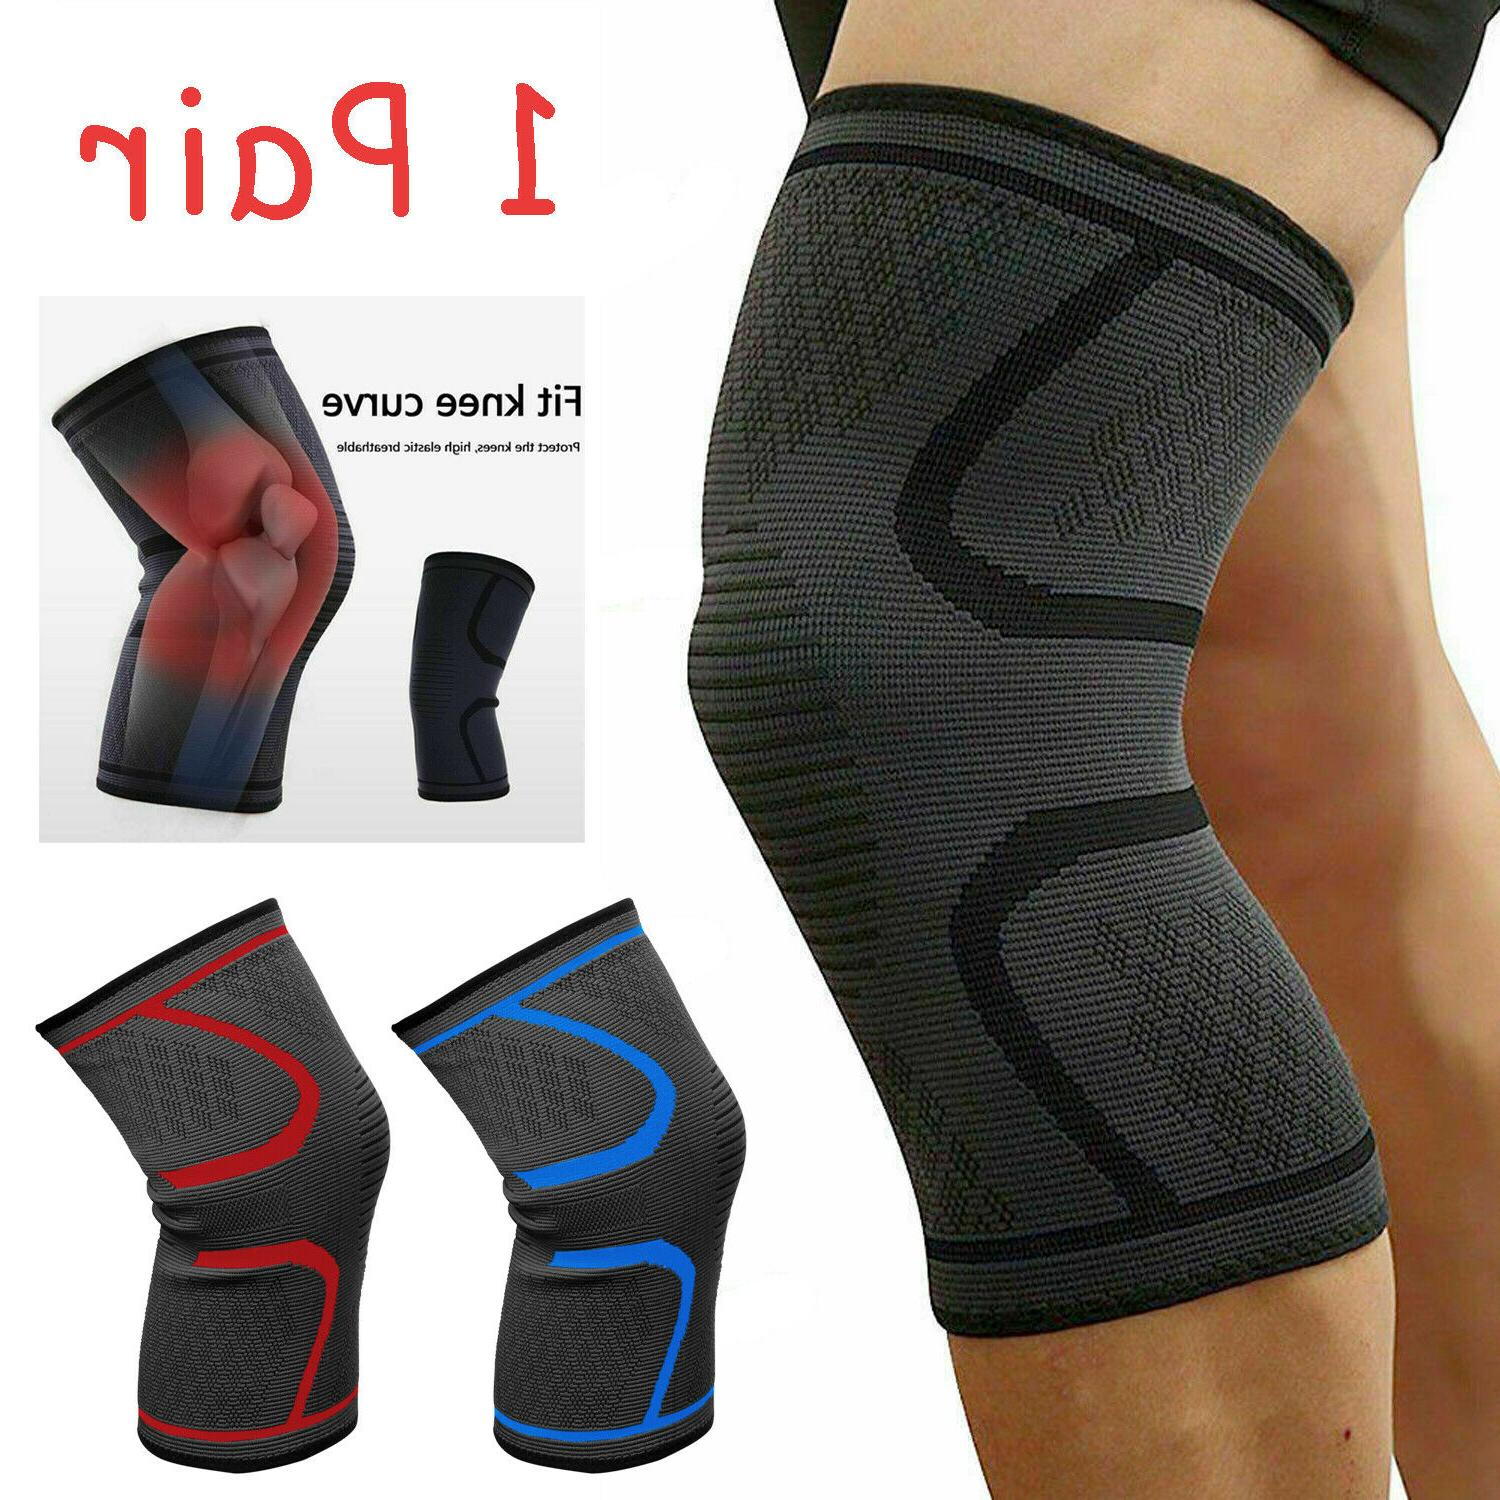 1 pair knee sleeves brace support